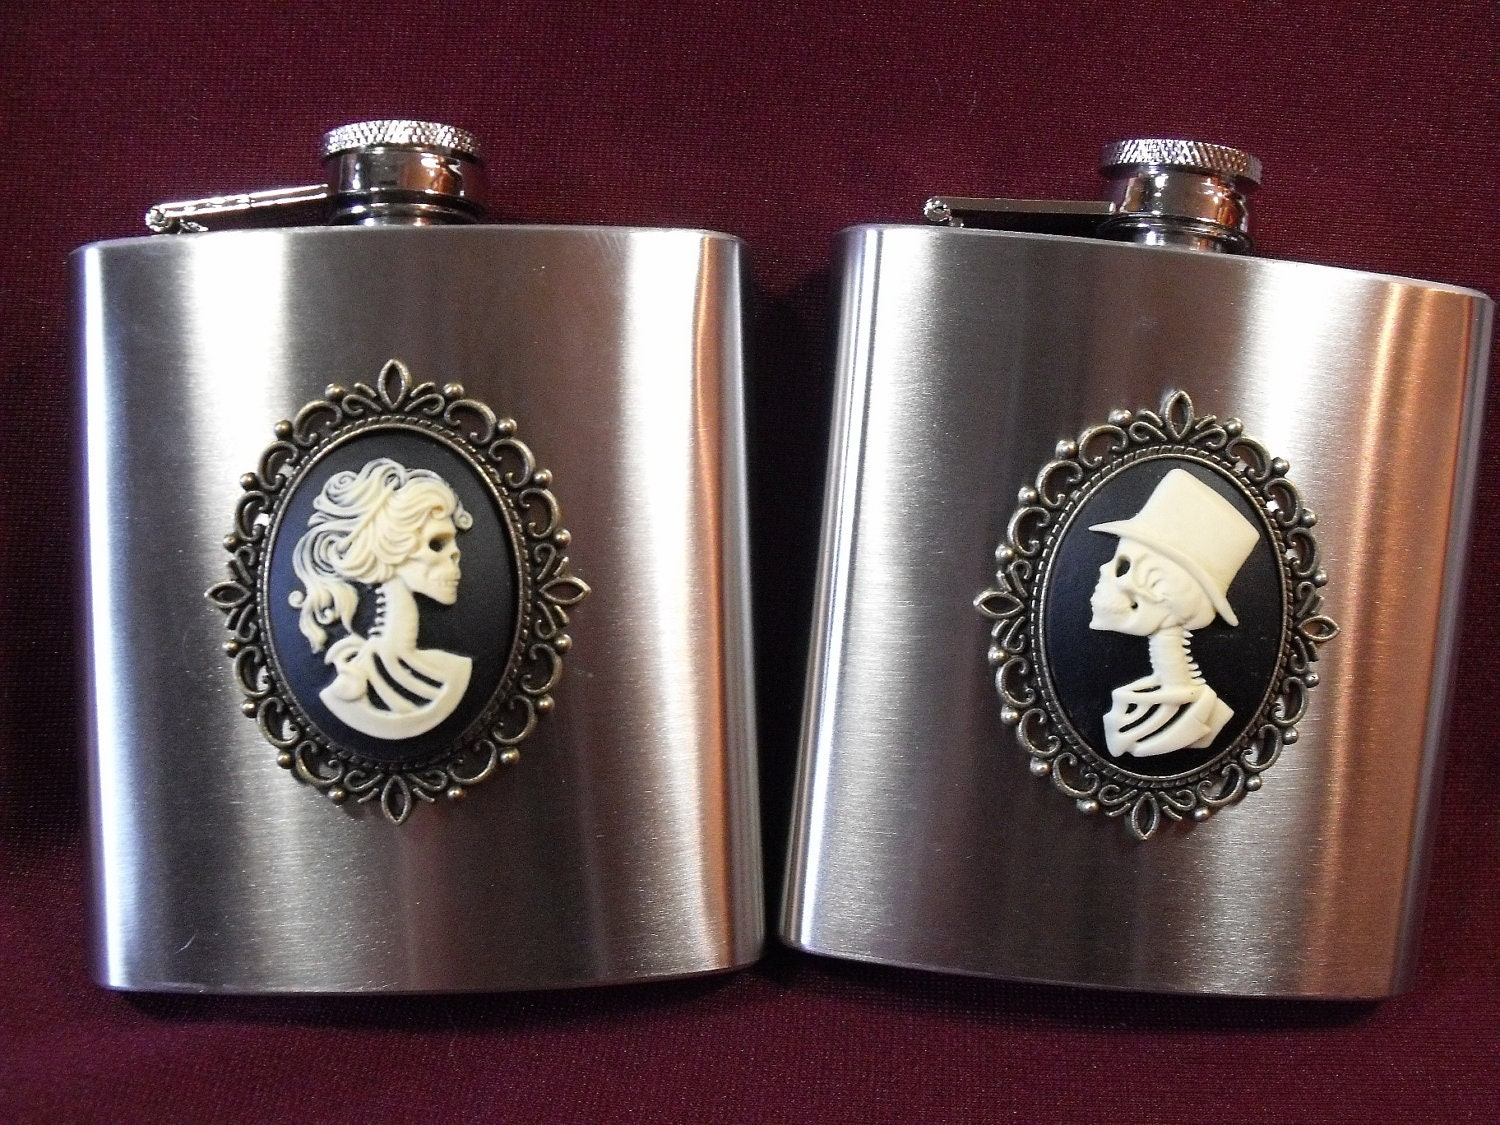 Groom Wedding Gift From Bride: Flask Gothic Bride And Groom Cameos Wedding Gift Mens